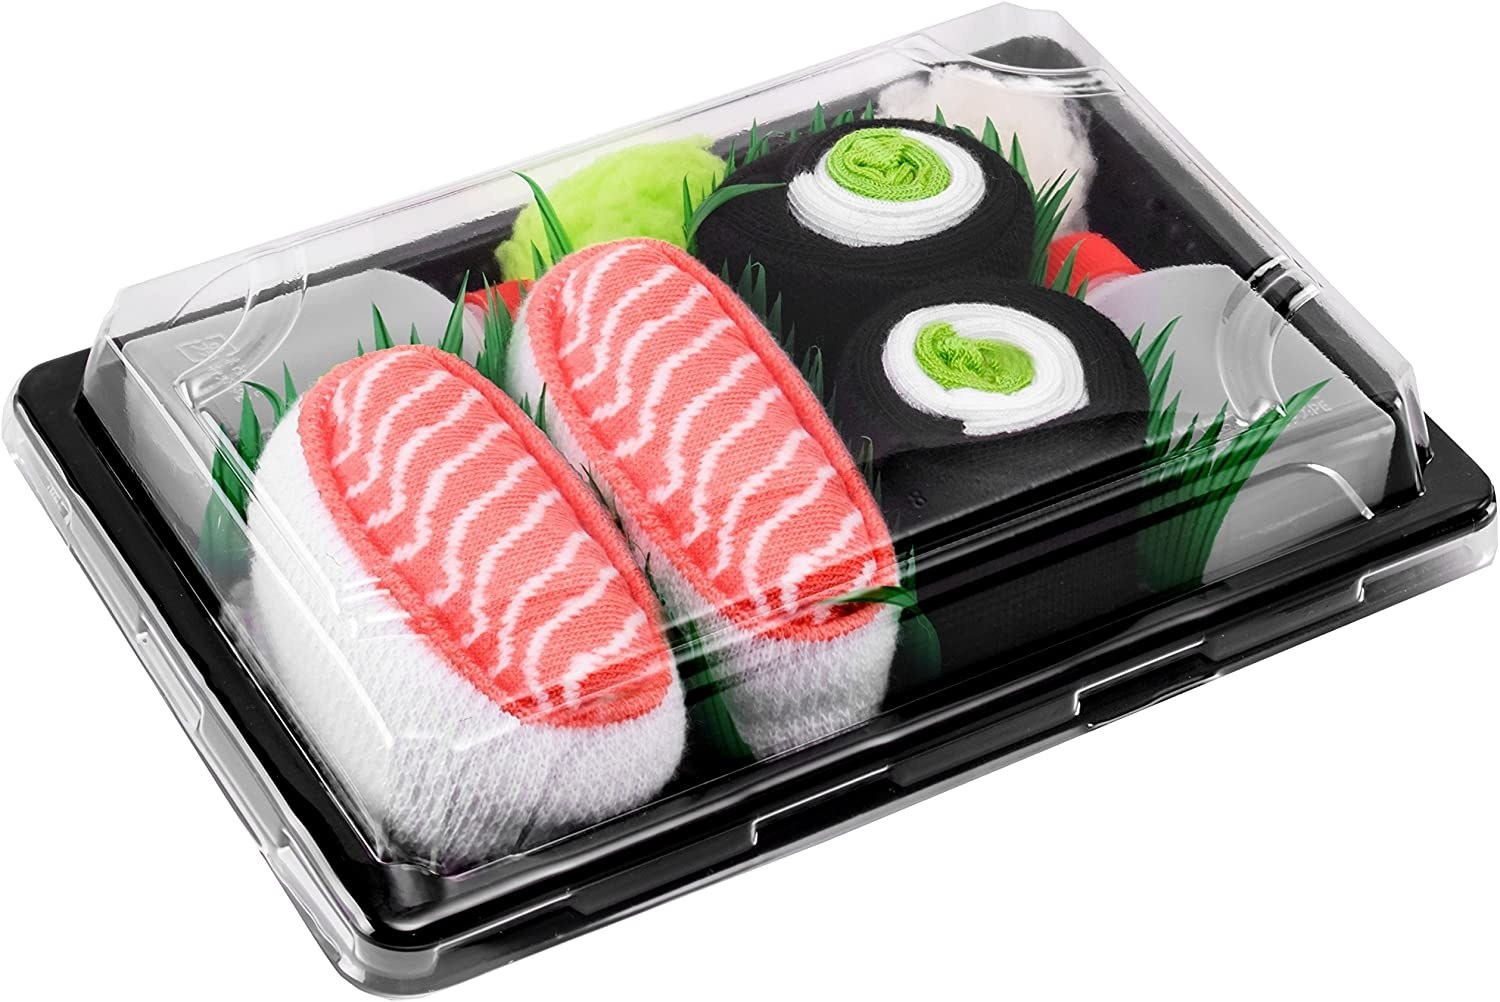 Sushi socks in a box